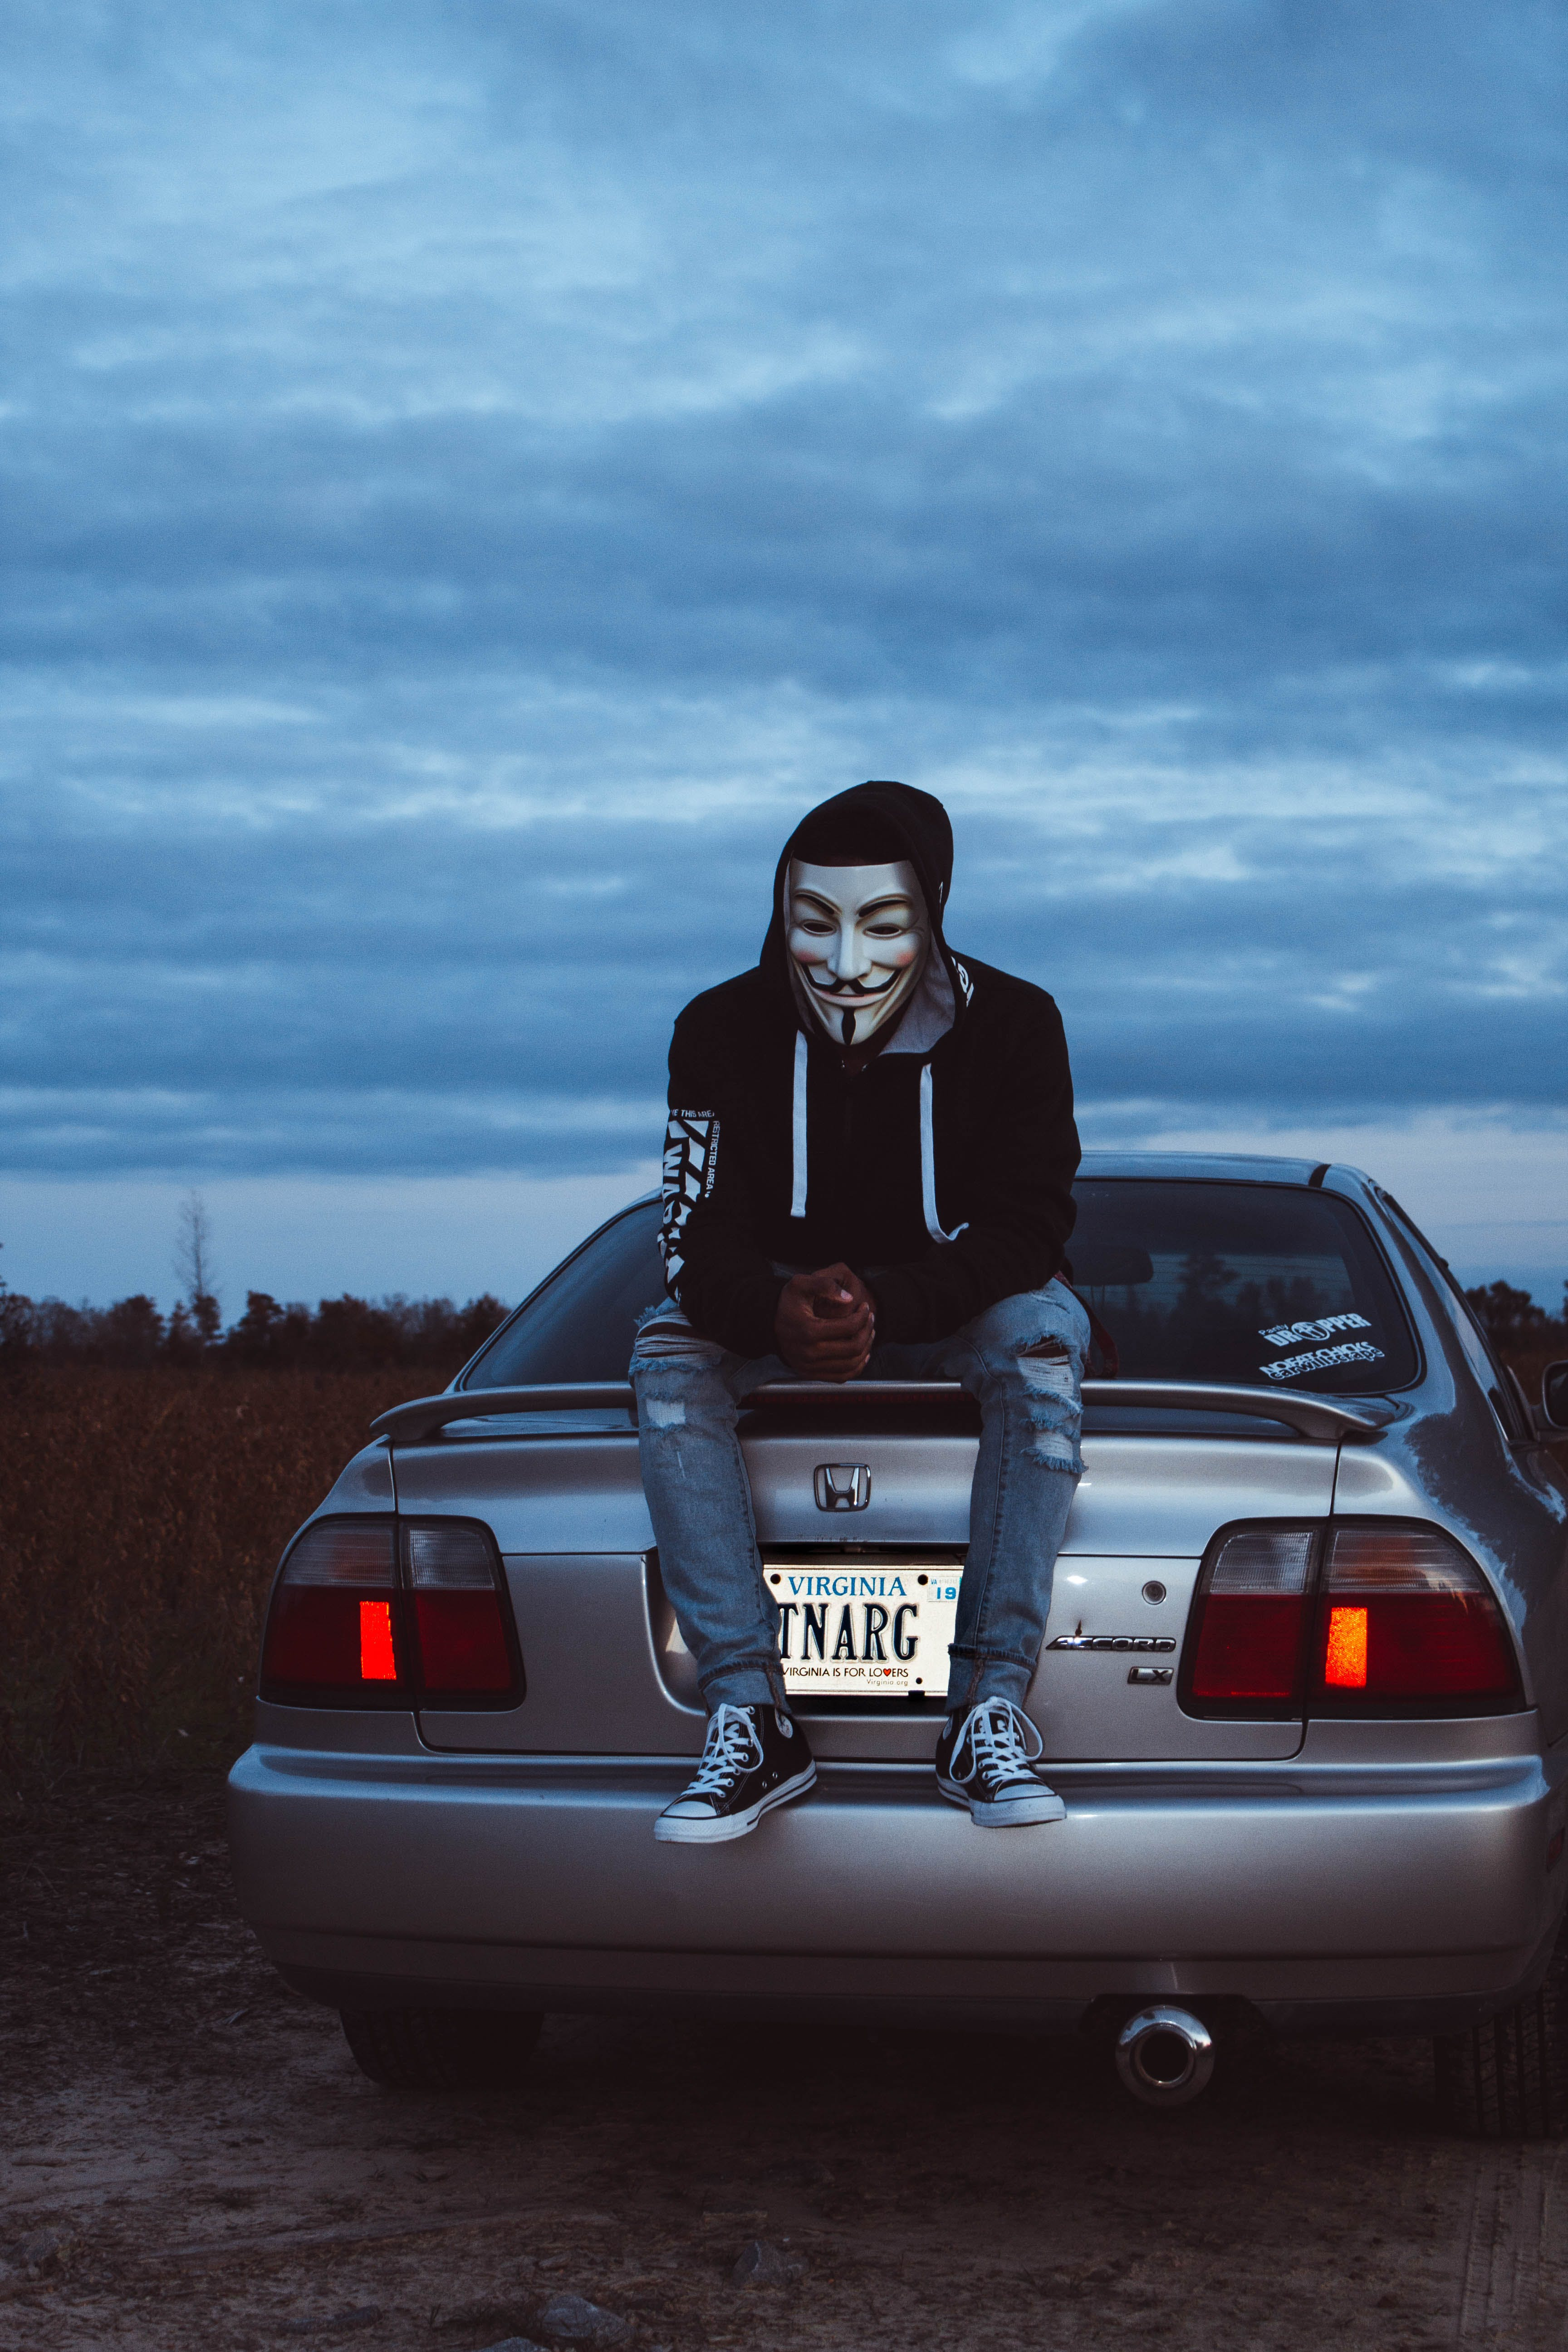 Man Wearing Guy Fawkes Mask Sitting on Gray Honda Vehicle